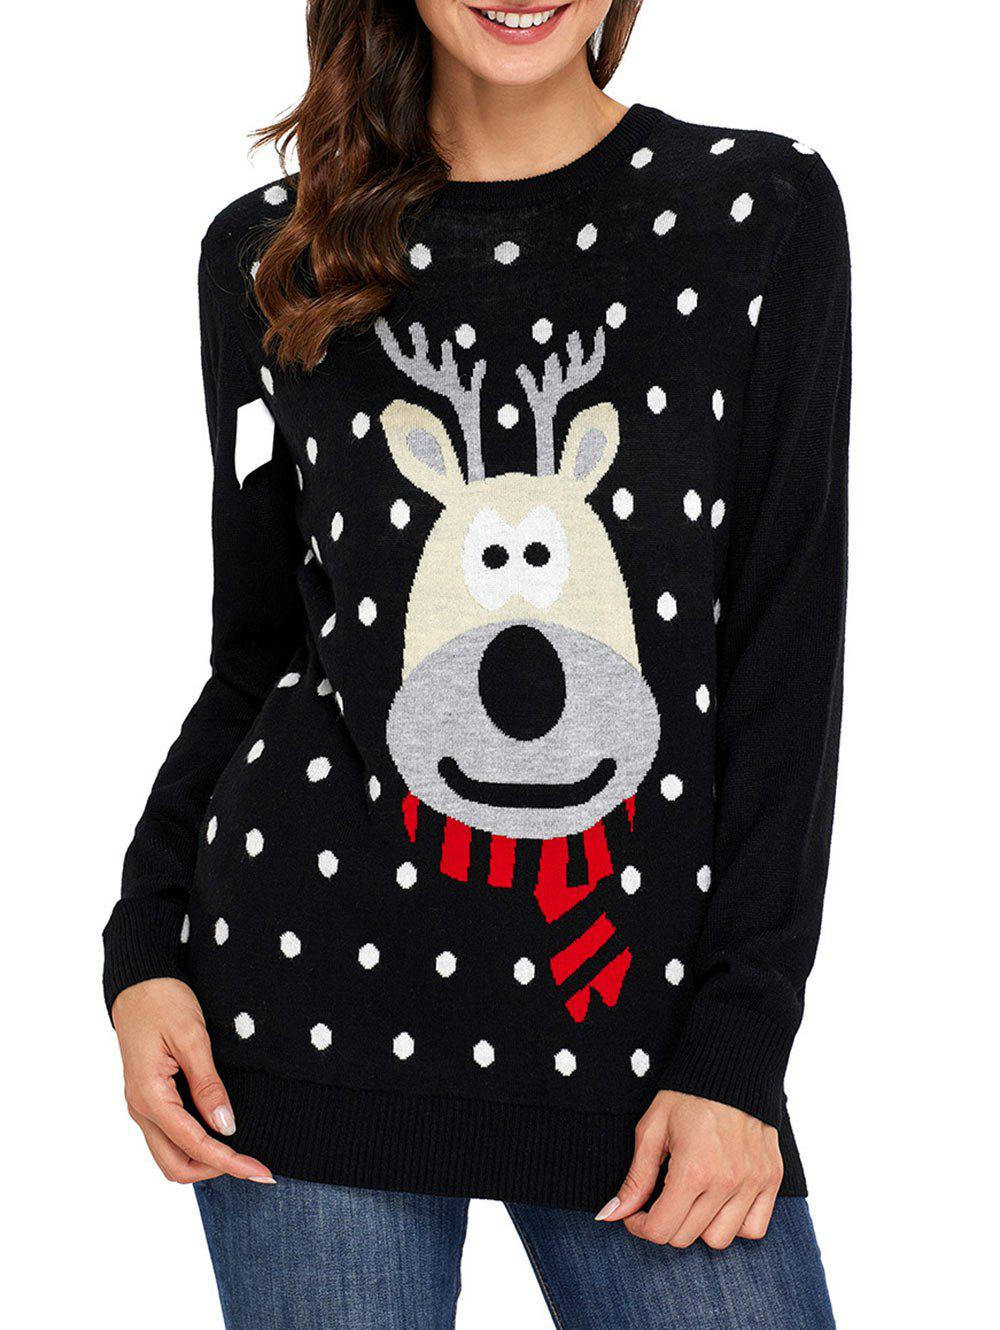 Christmas Deer and Polka Dot Jacquard Sweater christmas letter and deer jacquard sweater